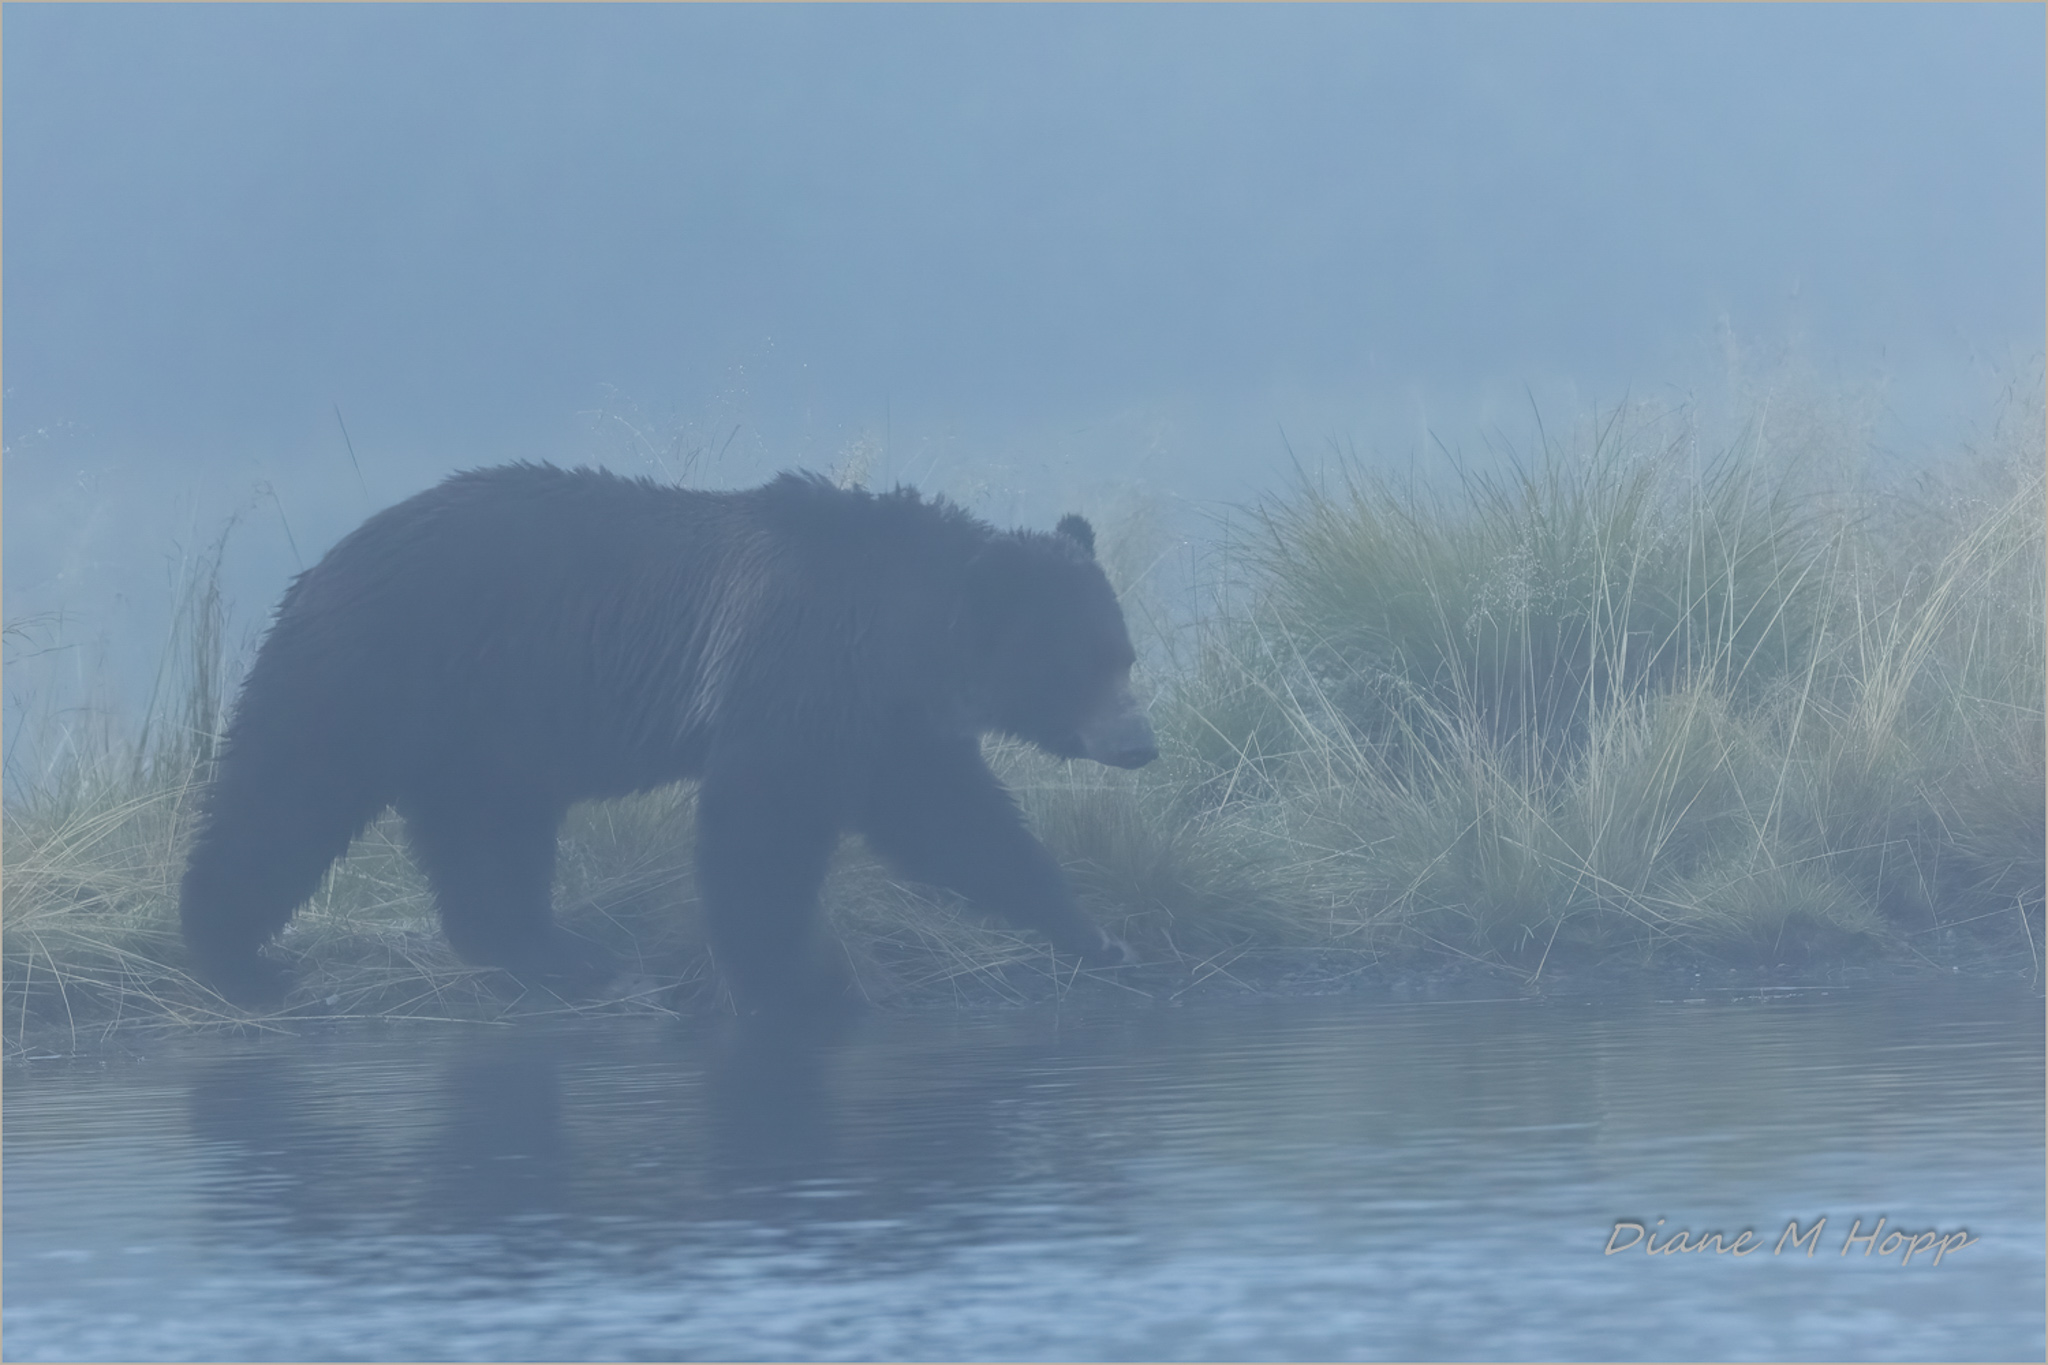 Early Morning Grizzly DMHopp